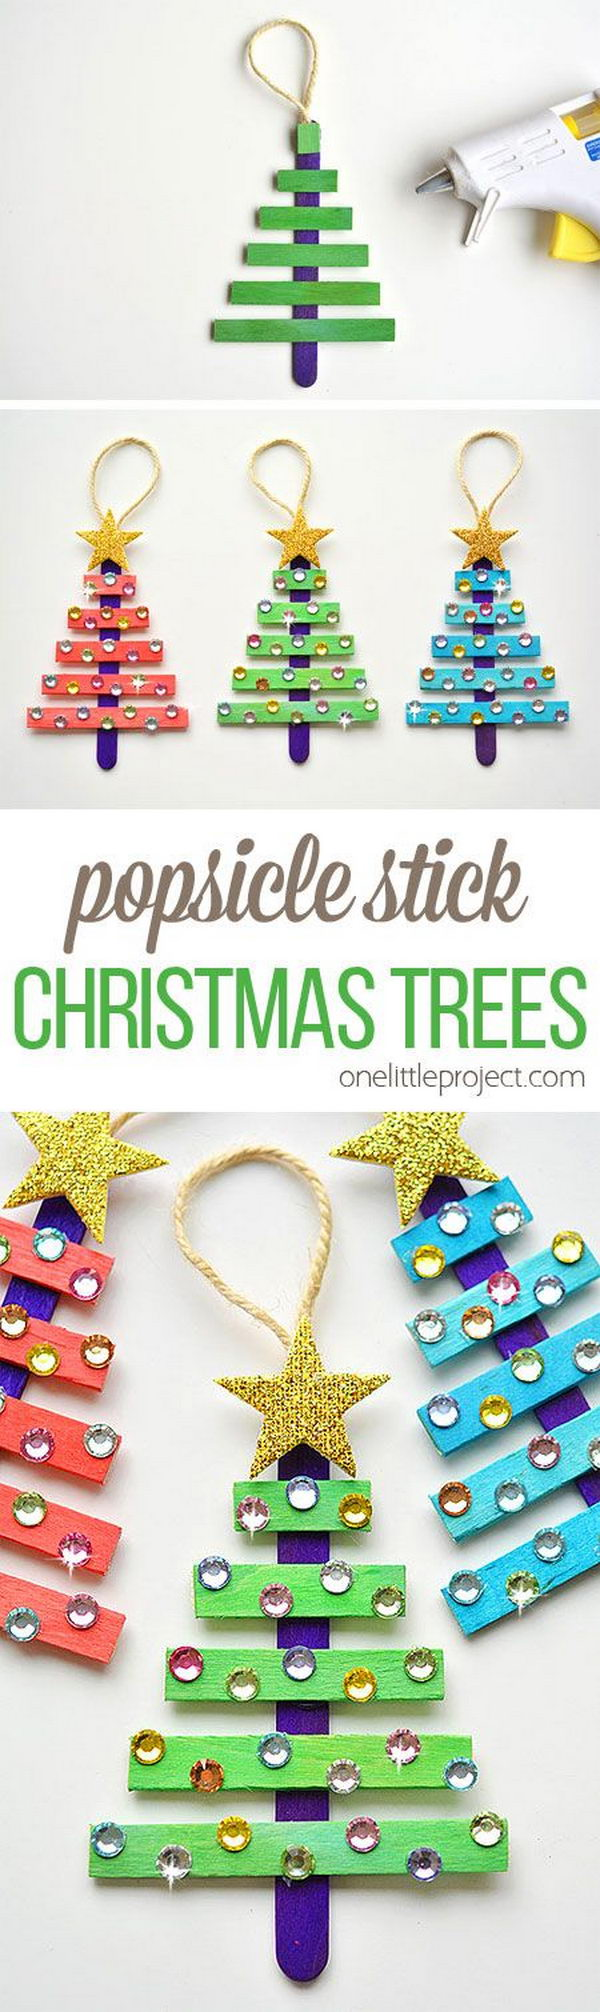 Glittering Popsicle Stick Christmas Trees .